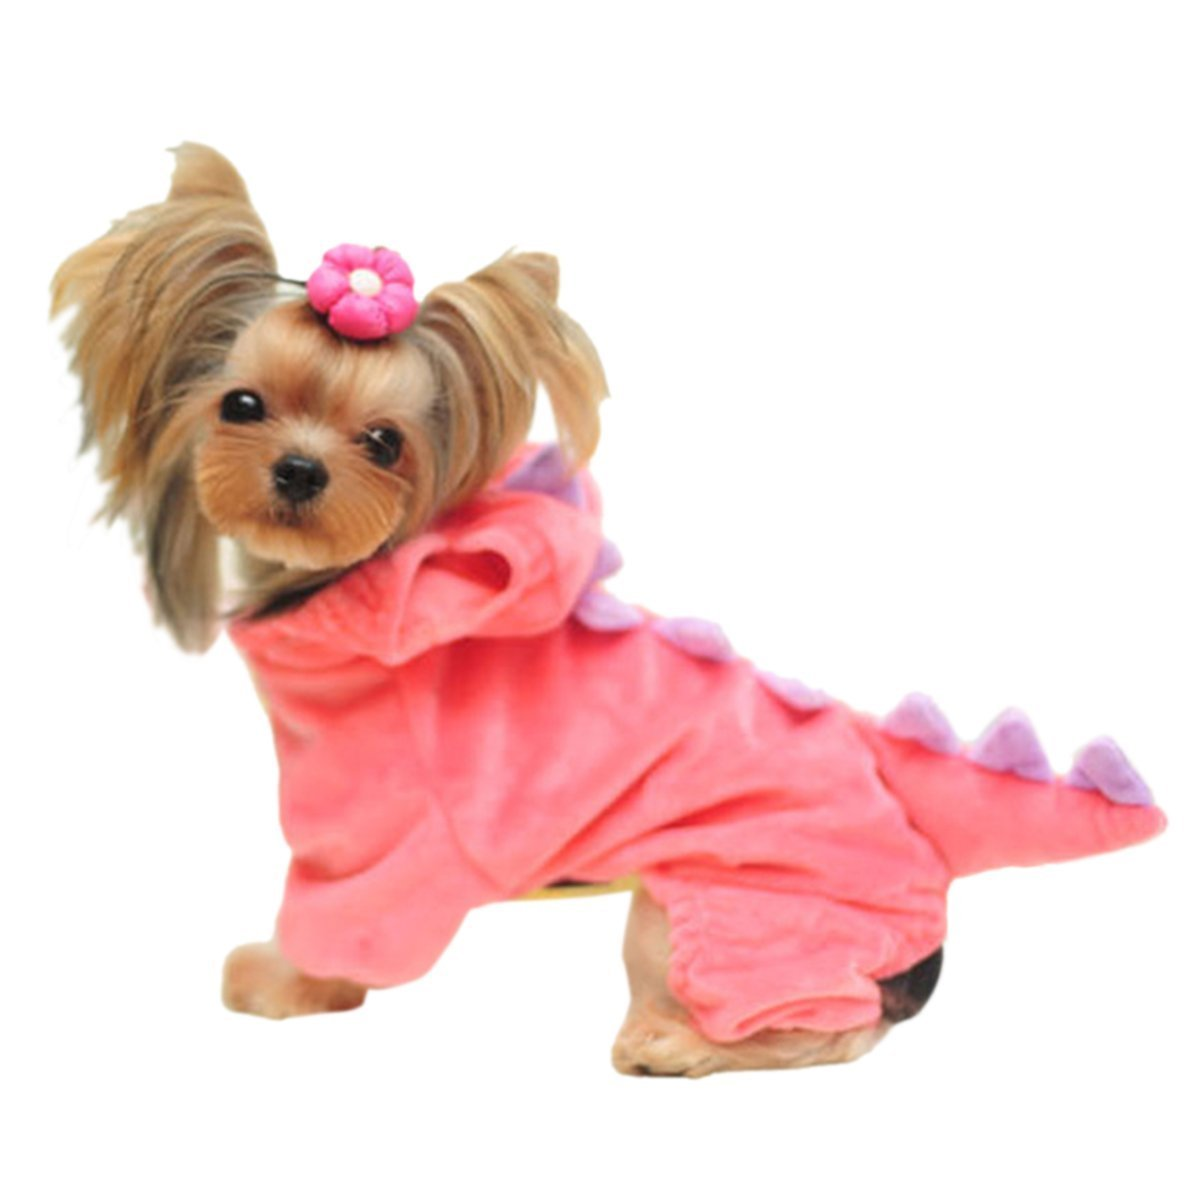 FanQube Cute Pet Dog Cat T-Shirt with Hat Clothing Small Puppy Costume for Holiday Parties (XL, Pink)